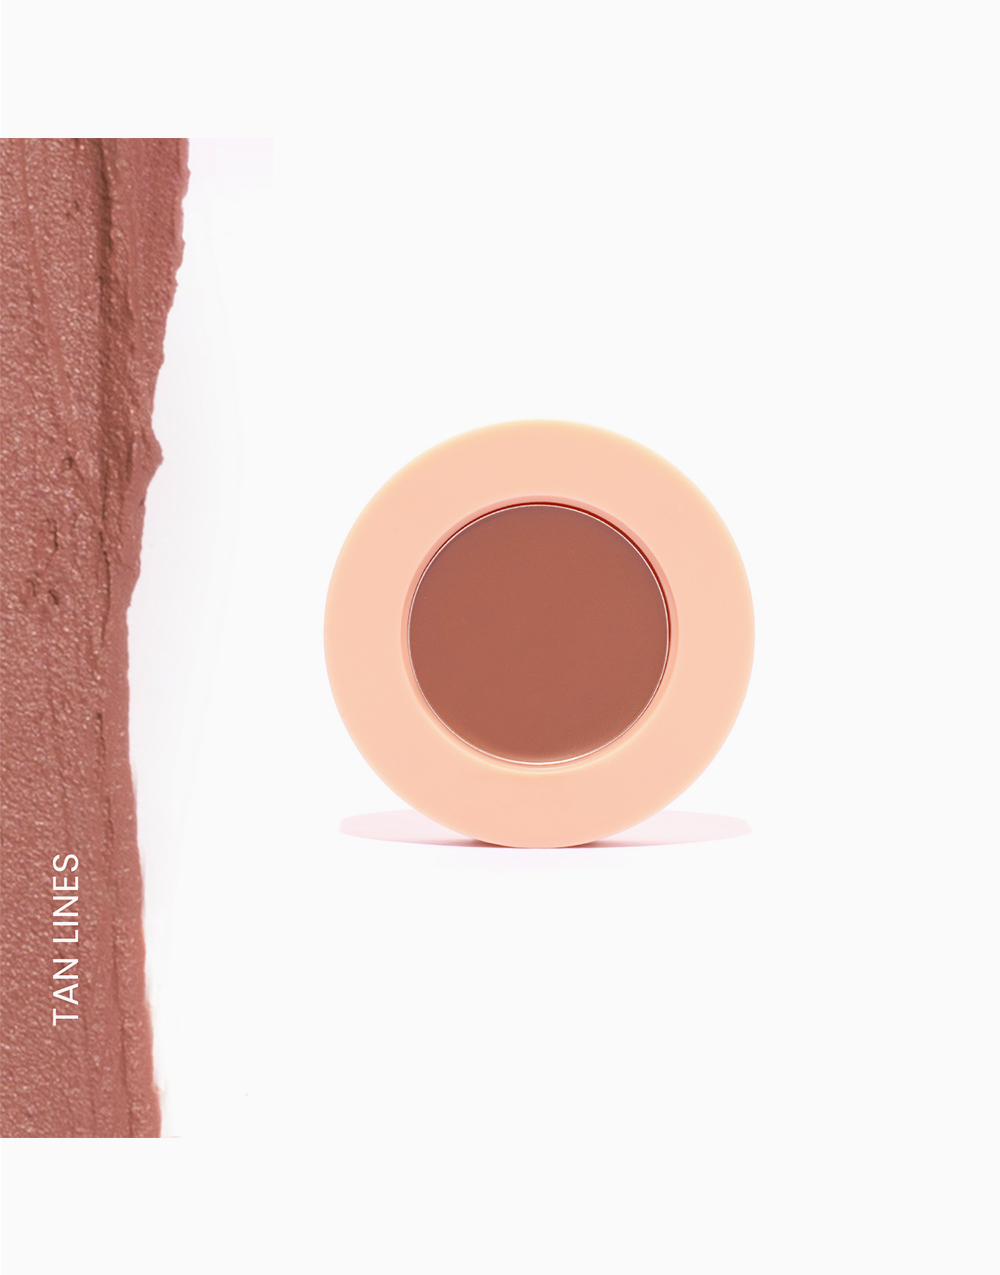 Face Stack Multi Pot Single Pan by BLK Cosmetics | Tan Lines